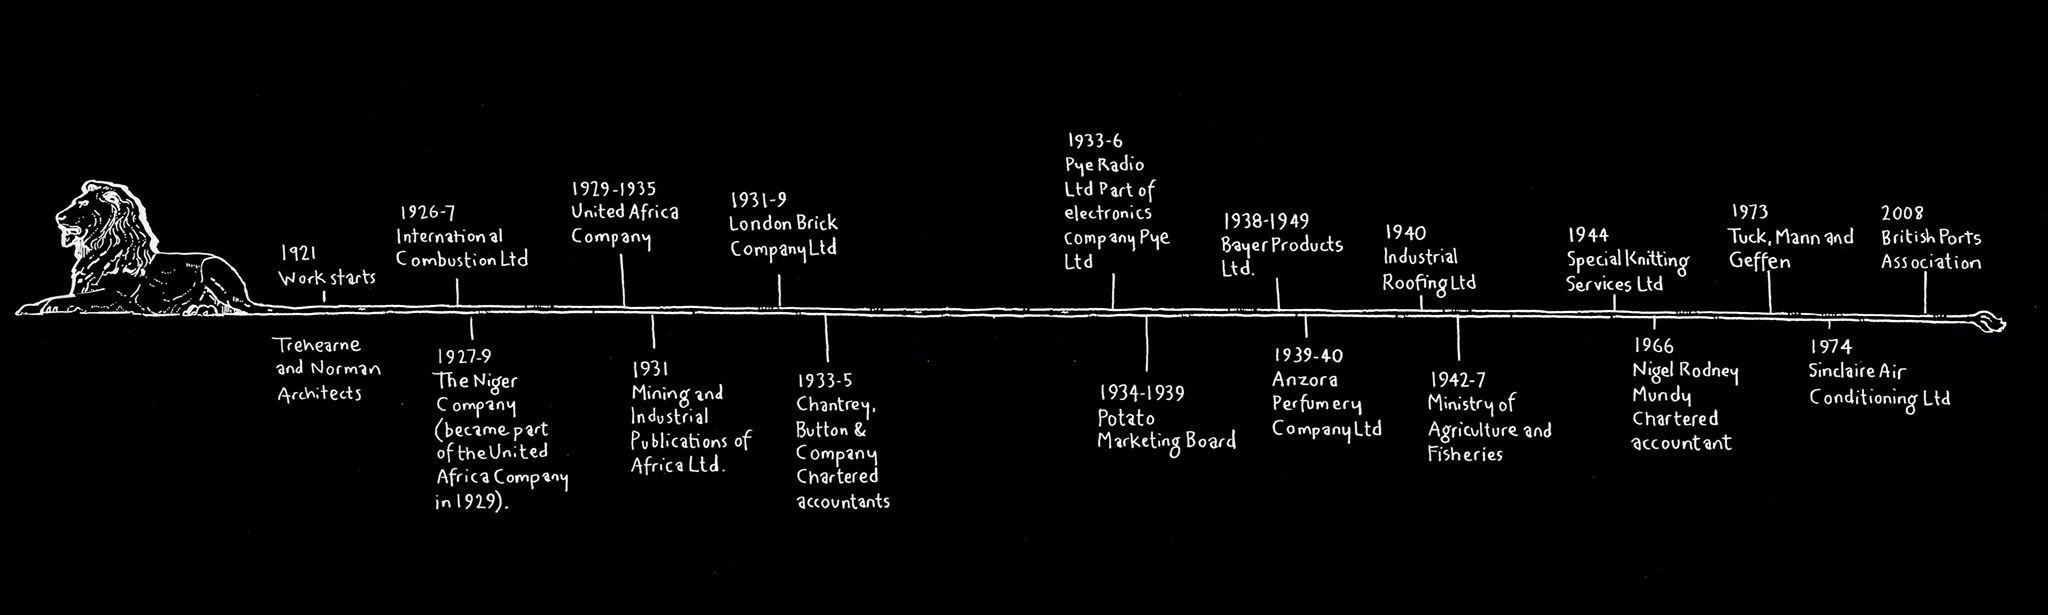 A timeline of points from the history of Africa House from 1921 to 2008